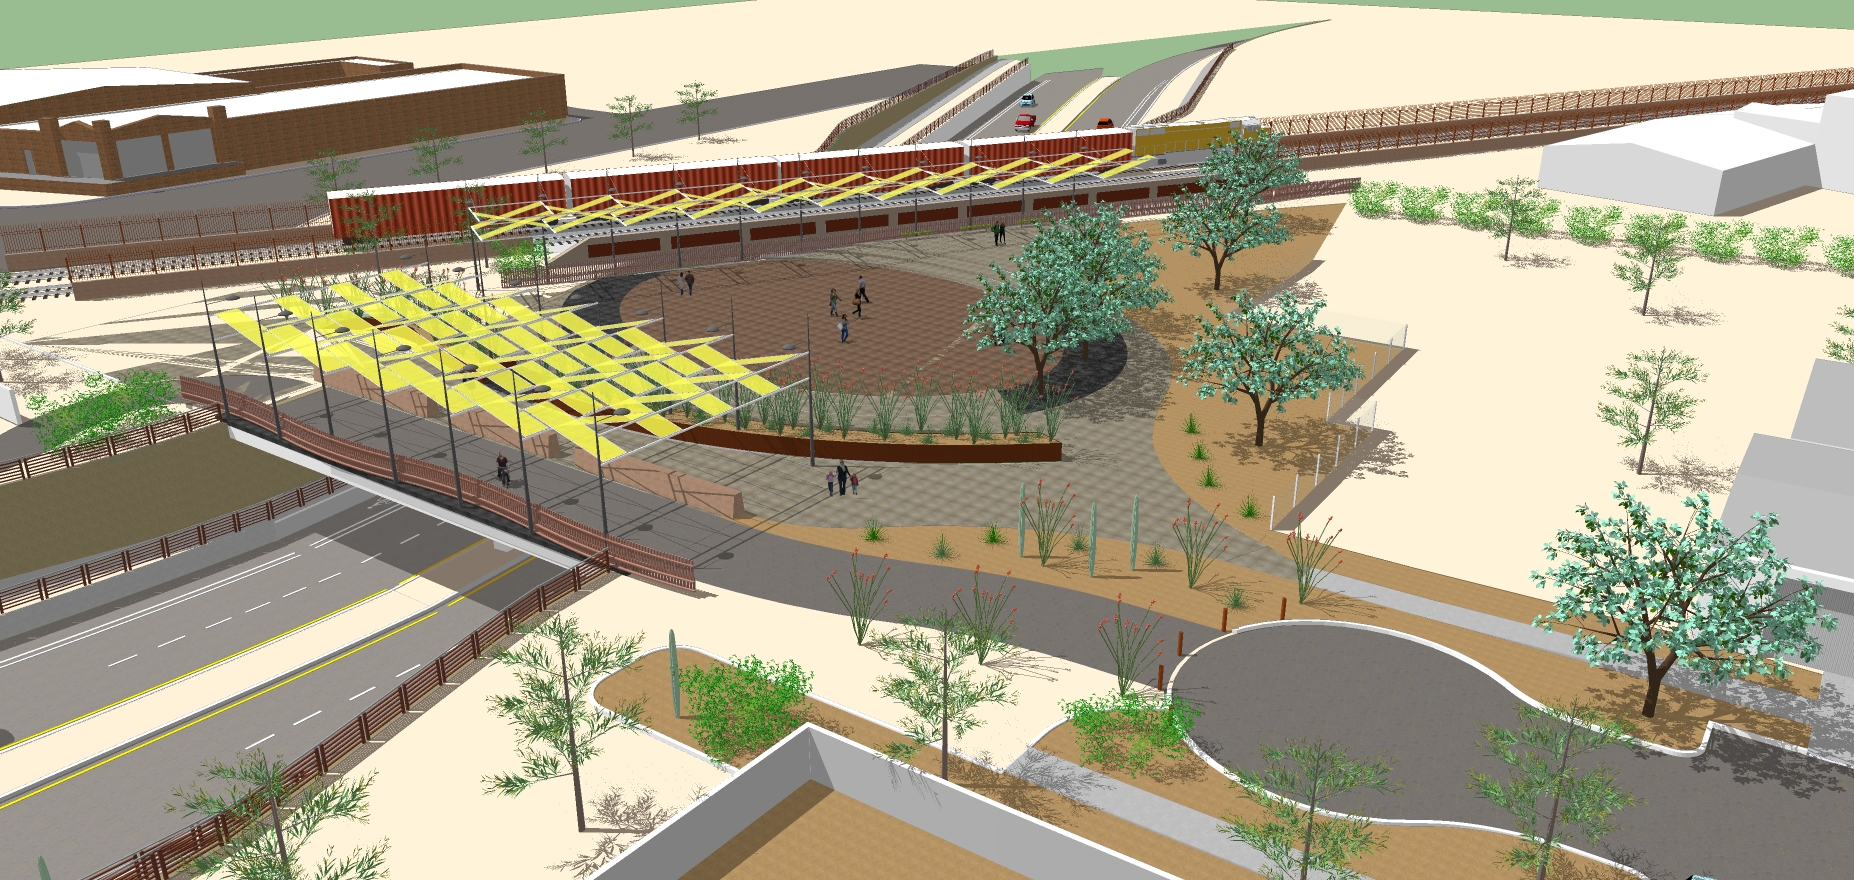 A rendering of the Deck Park